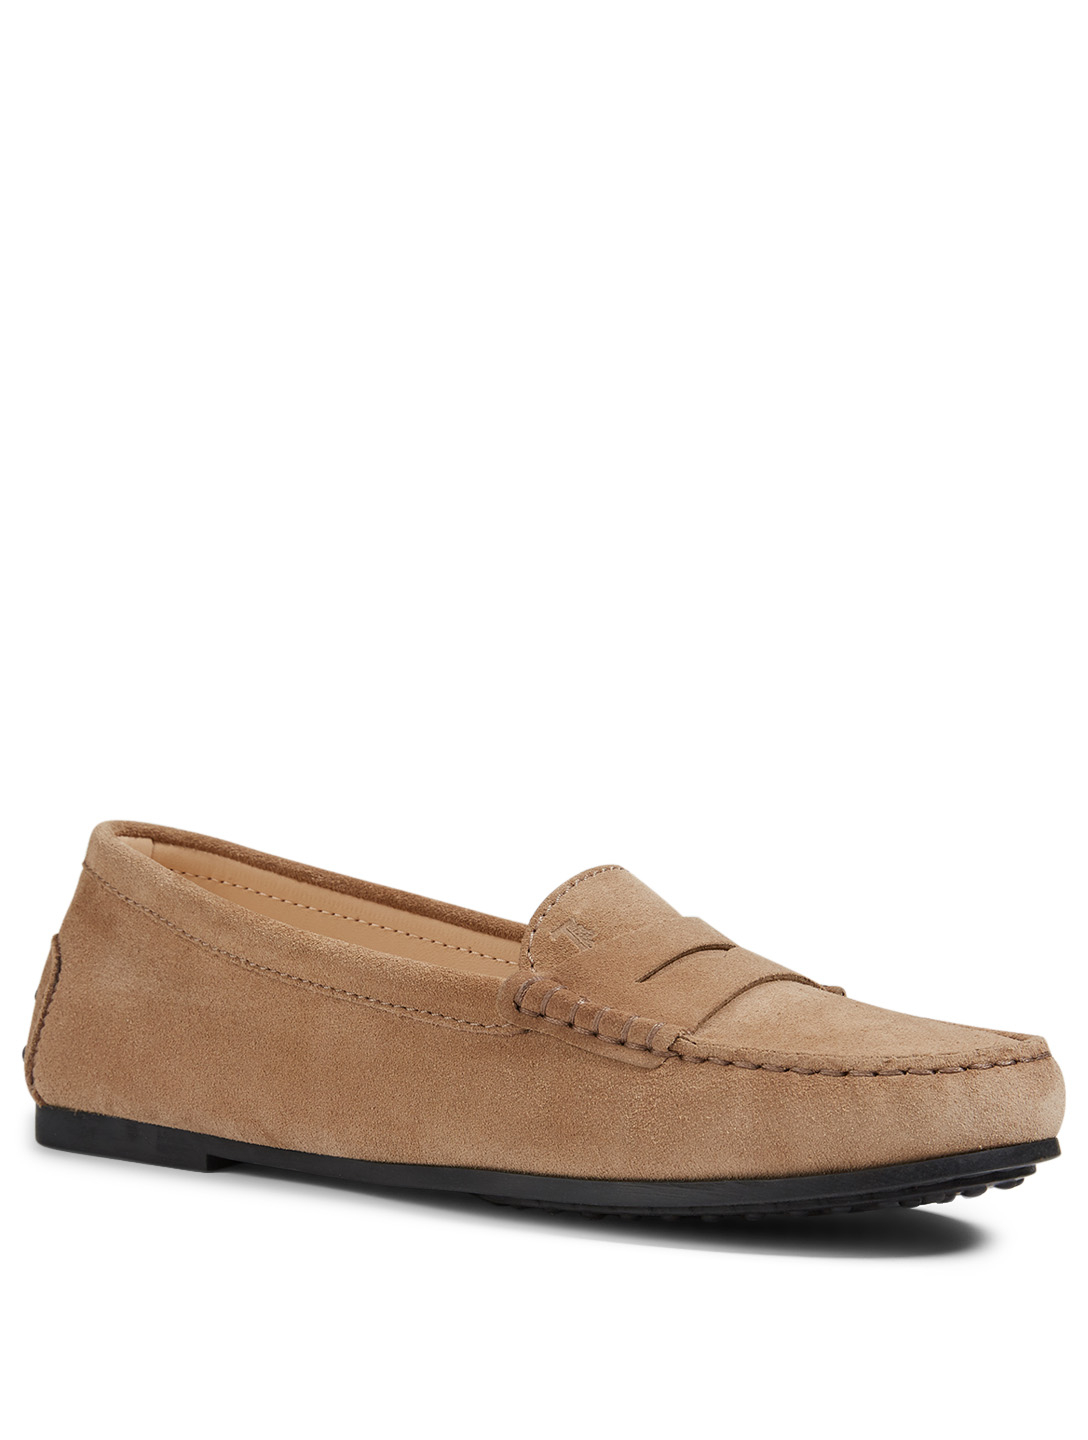 TOD'S City Gommini Suede Driving Shoes Women's Neutral